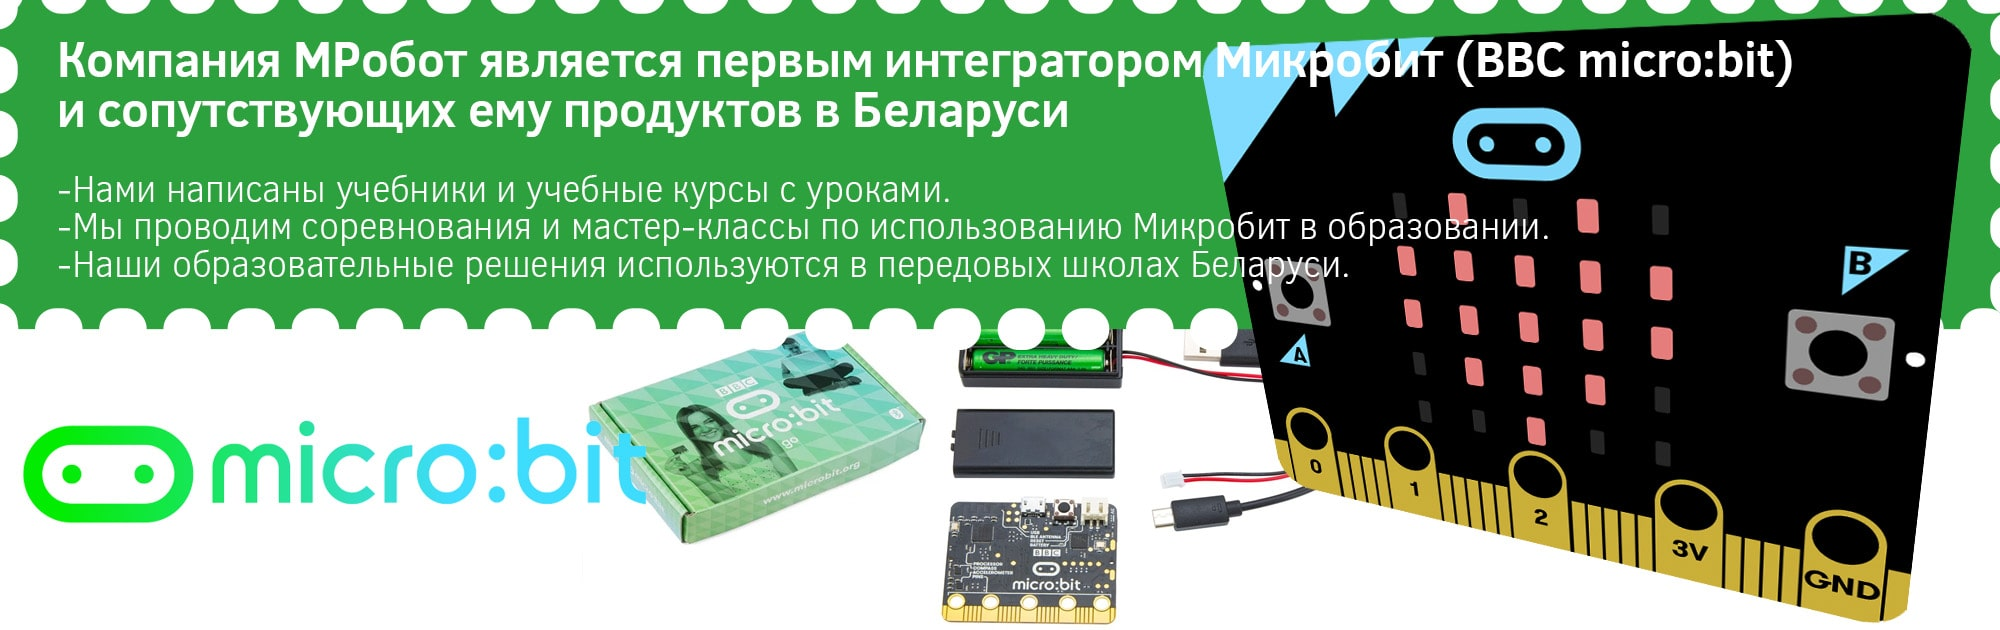 microbit-slider-new-1-min